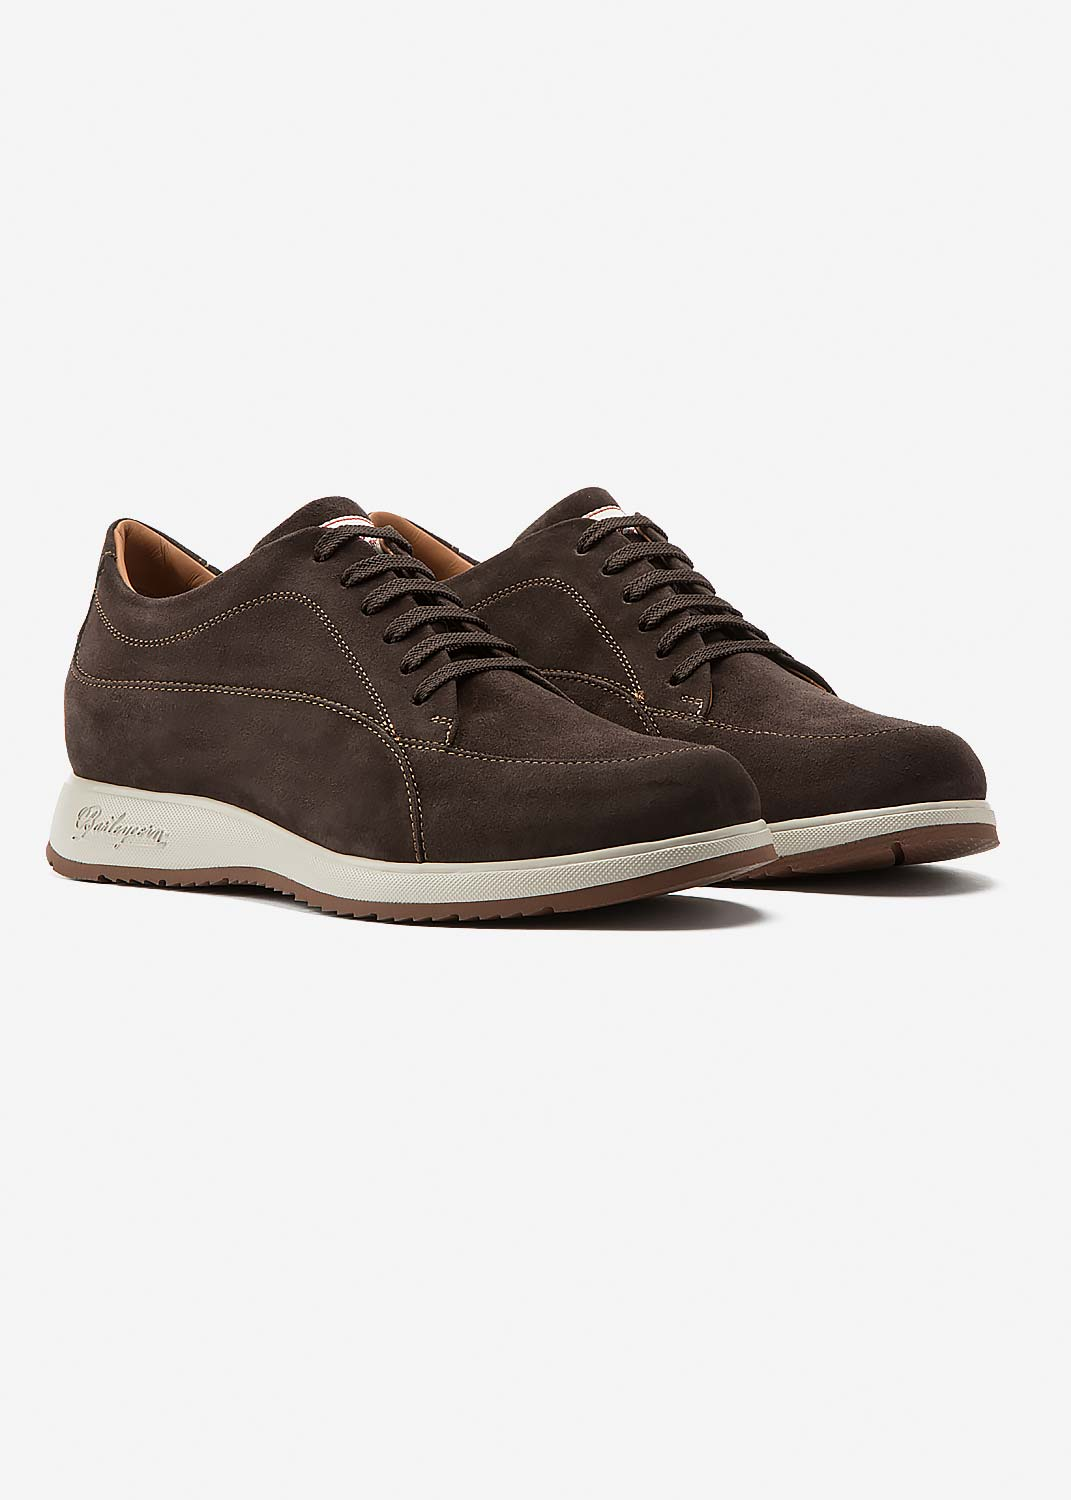 New Classic Choco Suede